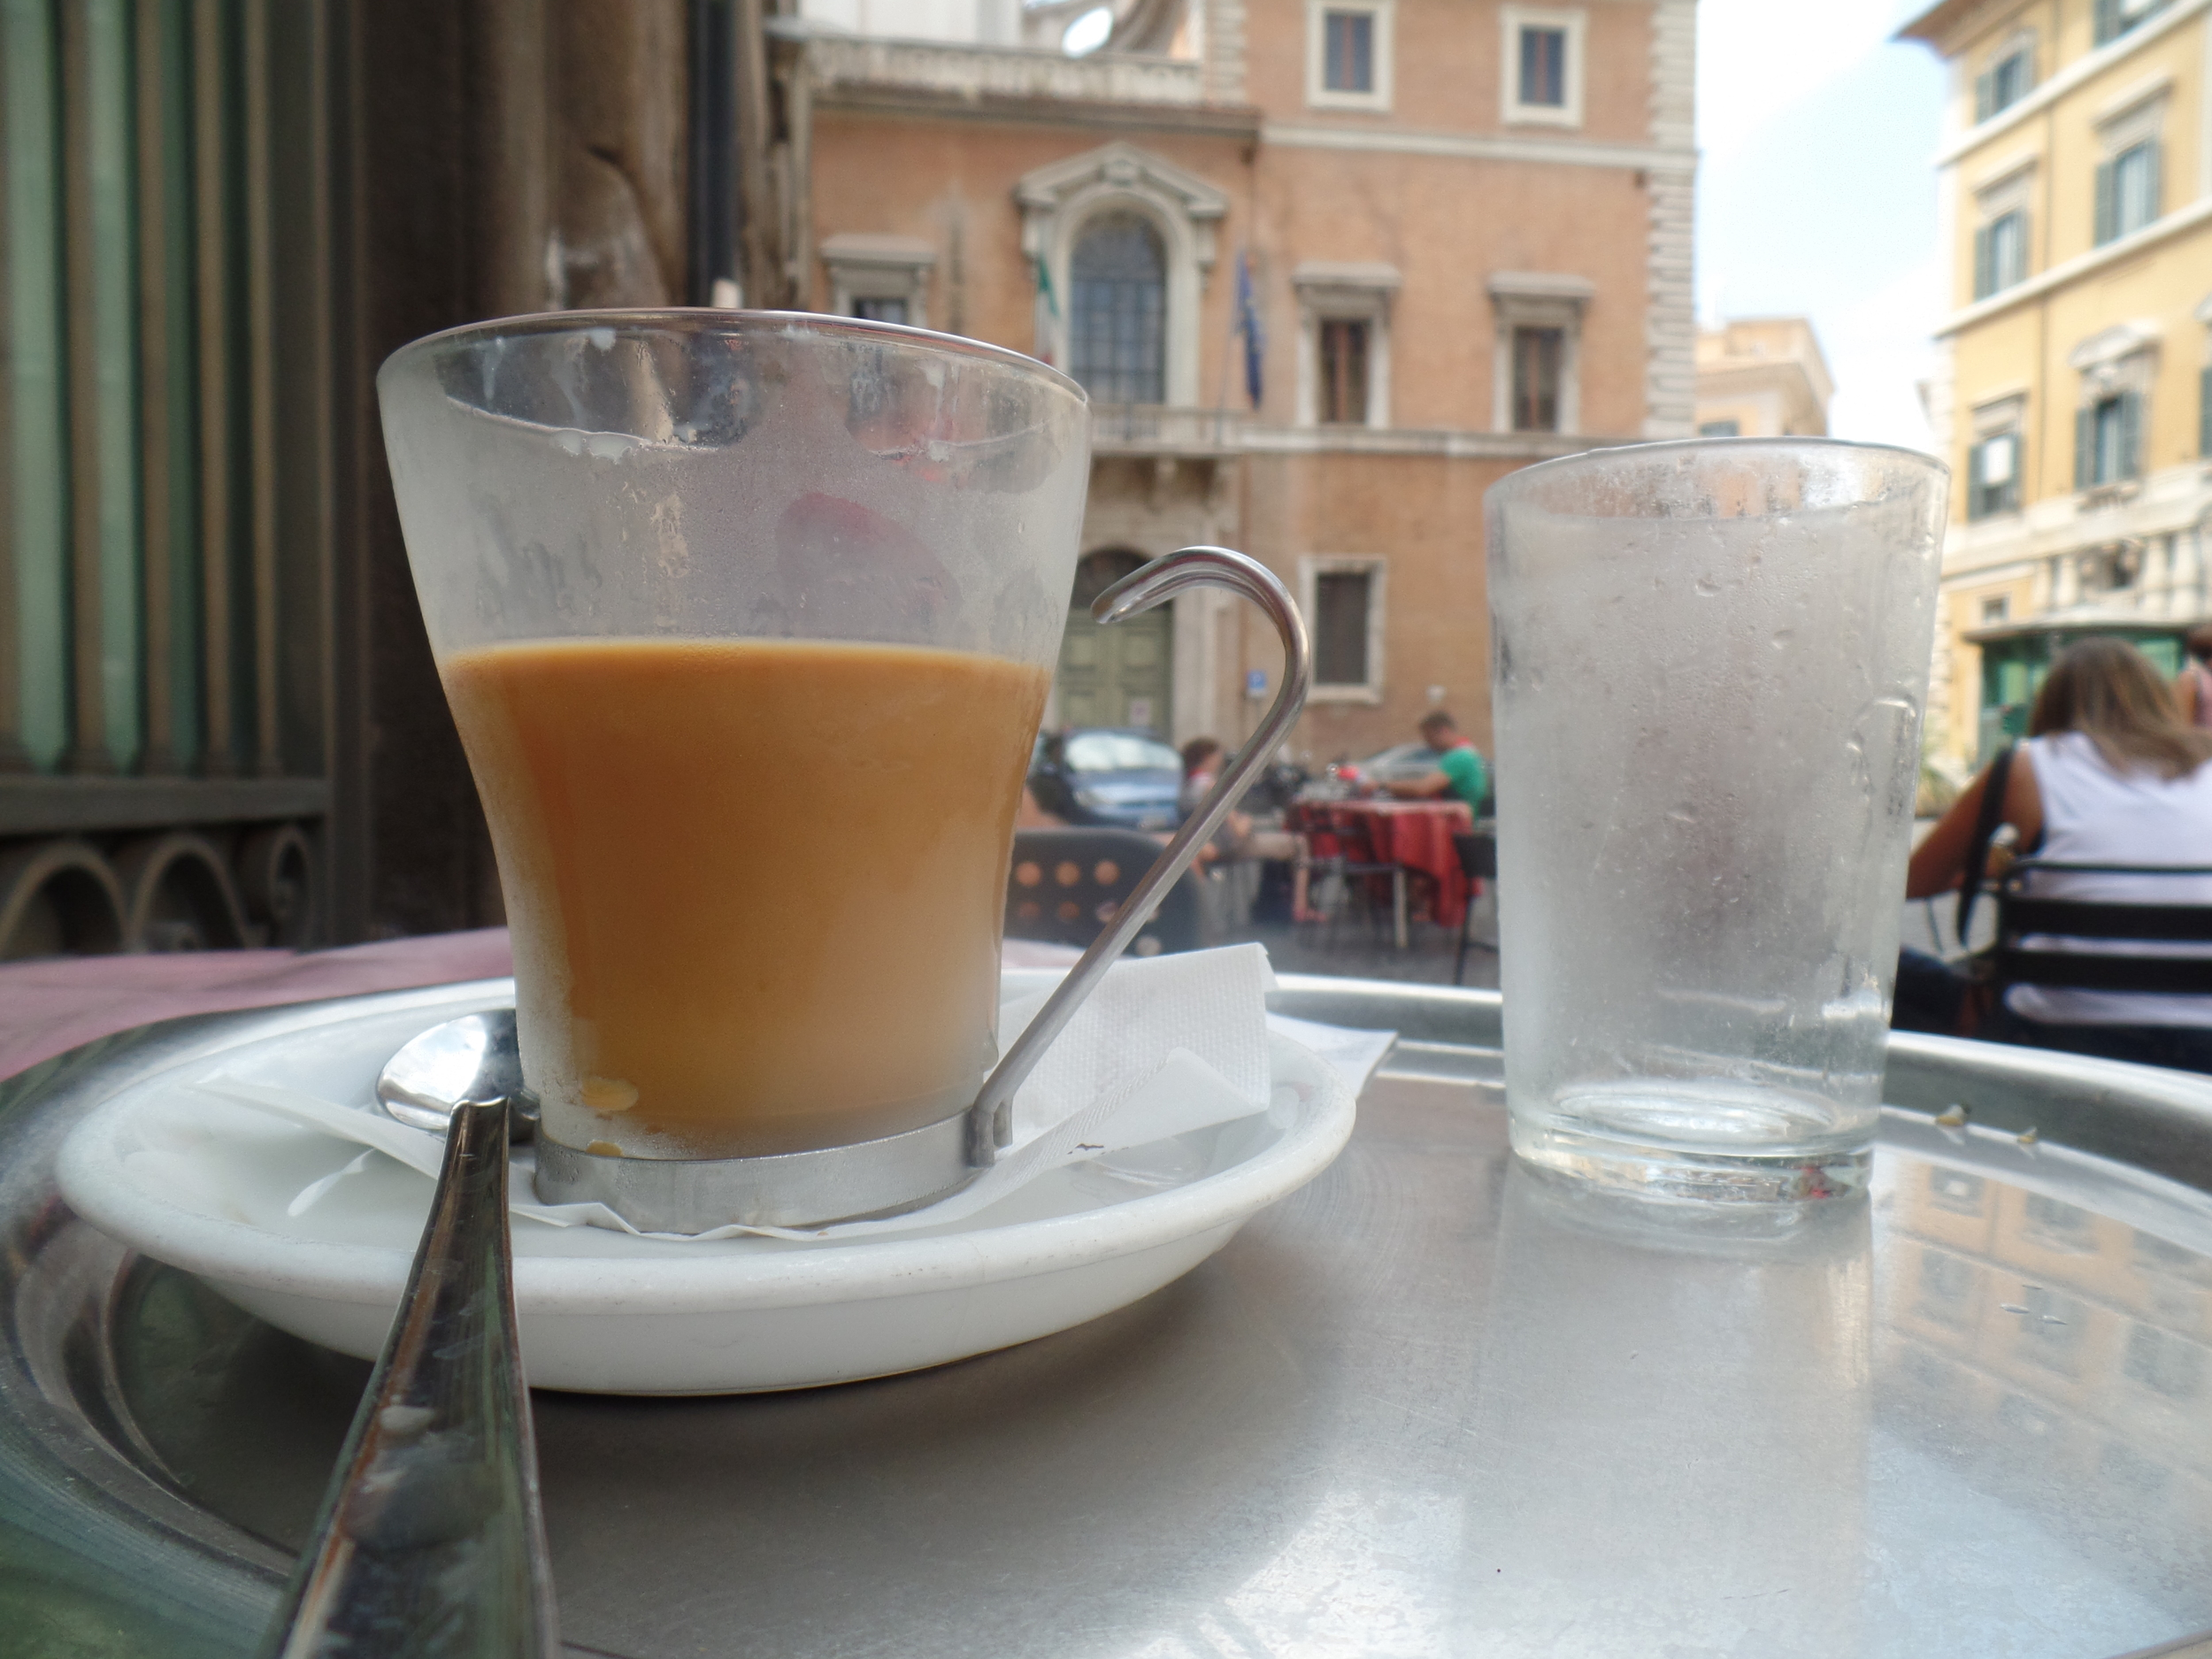 Having a non-authentic travel experience -- OMG, drinking coffee with milk after lunch time in Italy, I'm going to turn into a newt or something!